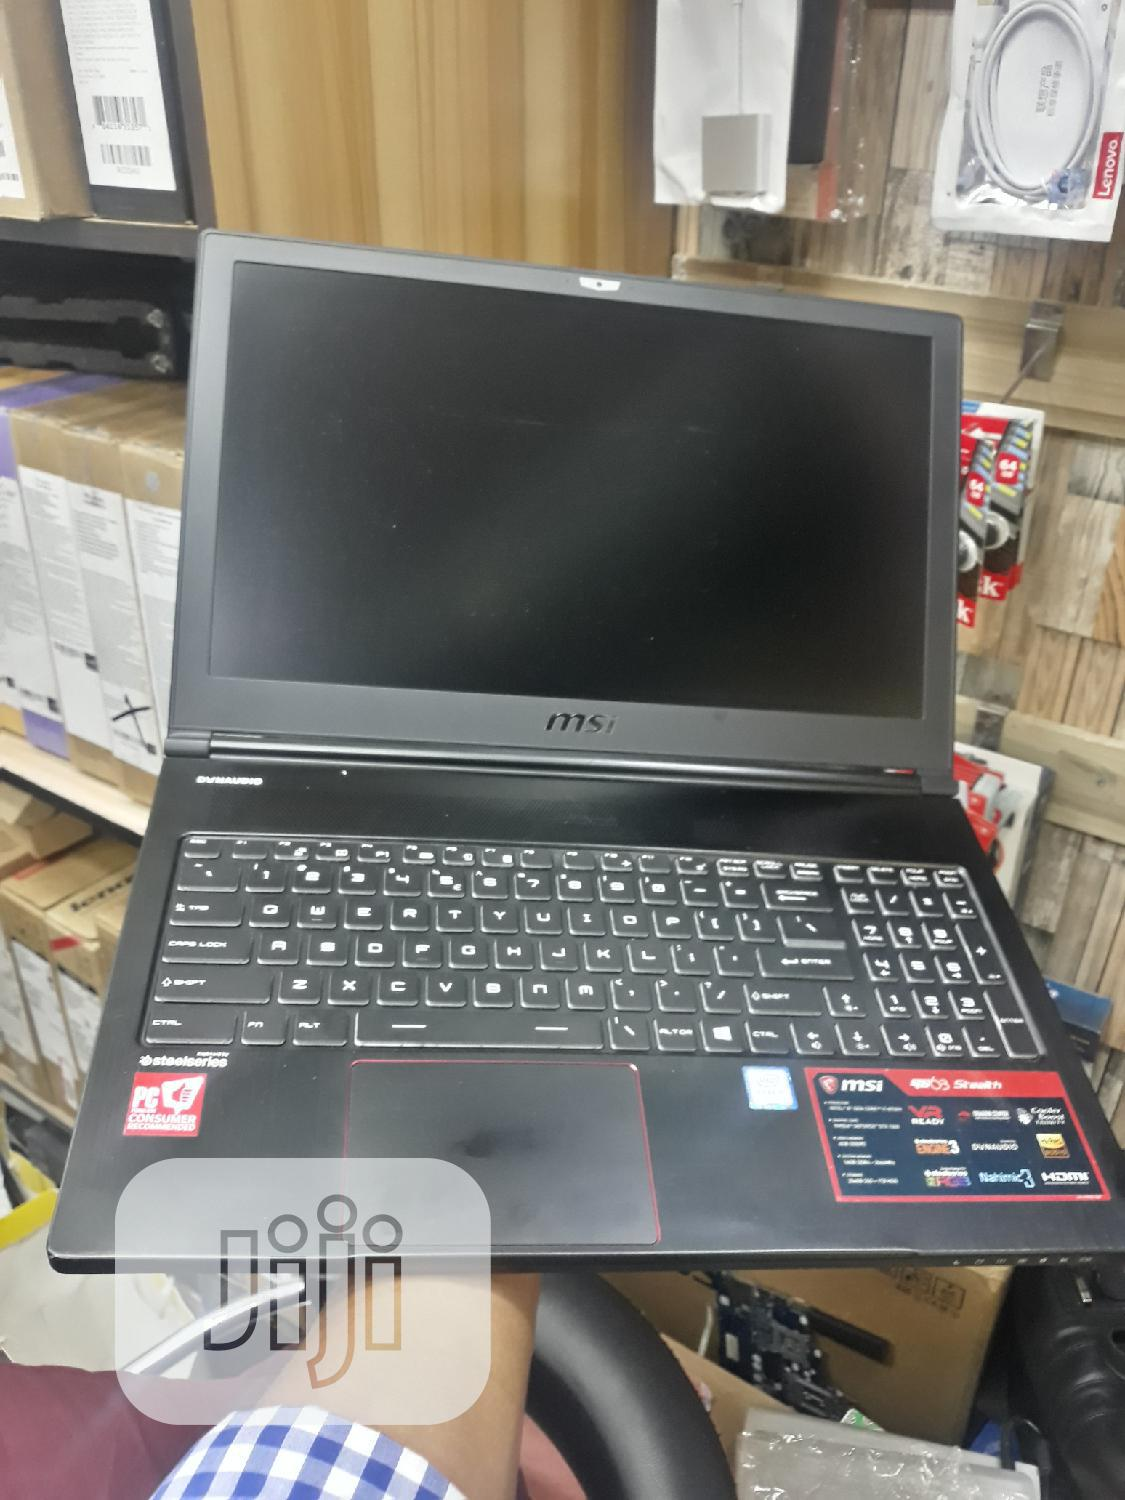 "MSI GS73VR 7RF Stealth Pro 15.6"" Inches 1T HDD Core I7 16GB RAM 